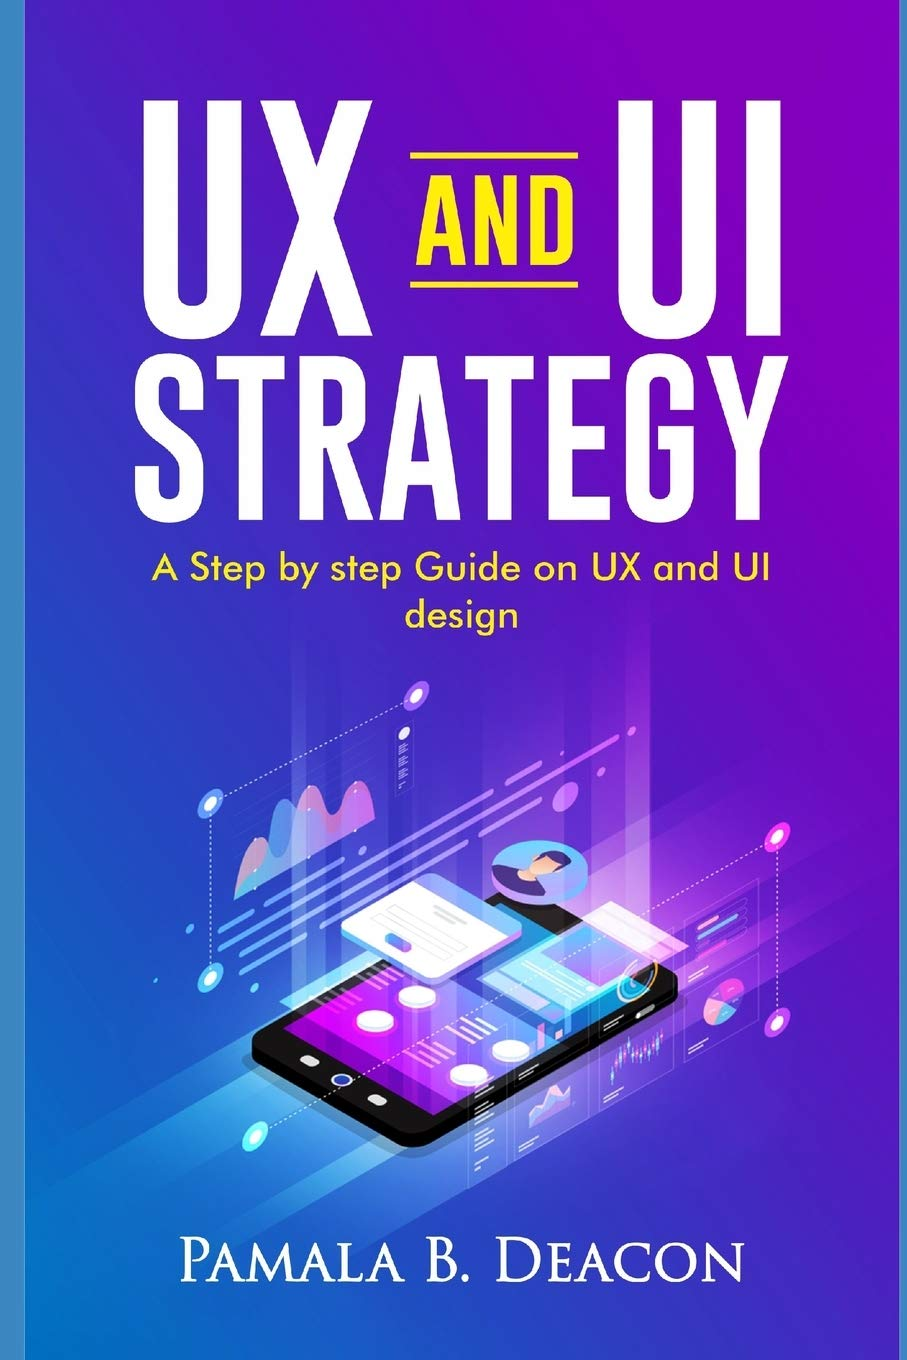 Ux And Ui Strategy A Step By Step Guide On Ux And Ui Design Deacon Pamala B Deacon Pamala B 9798580234182 Amazon Com Books